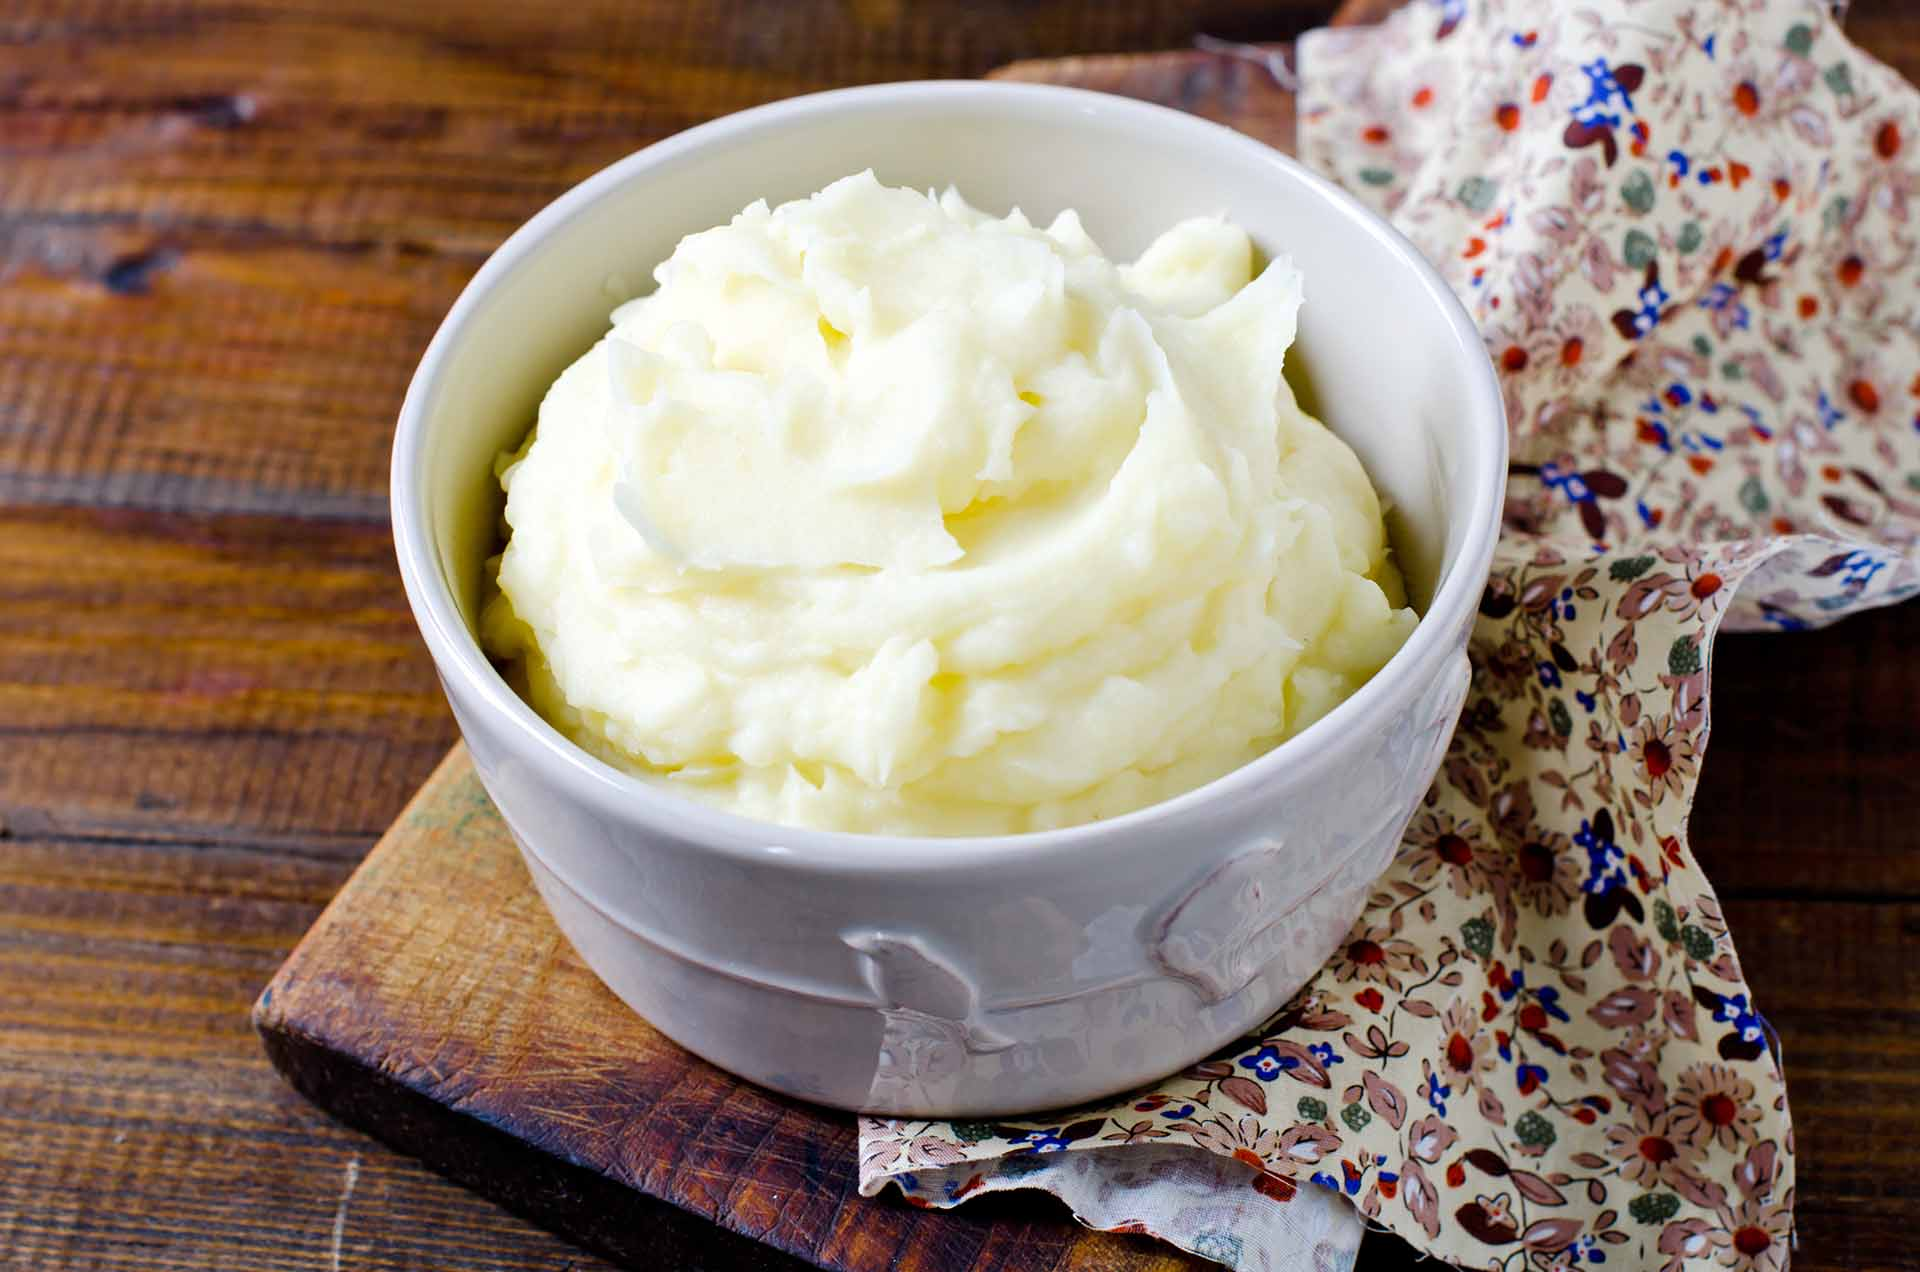 Mashed potatoes in a bowl on a wooden table.